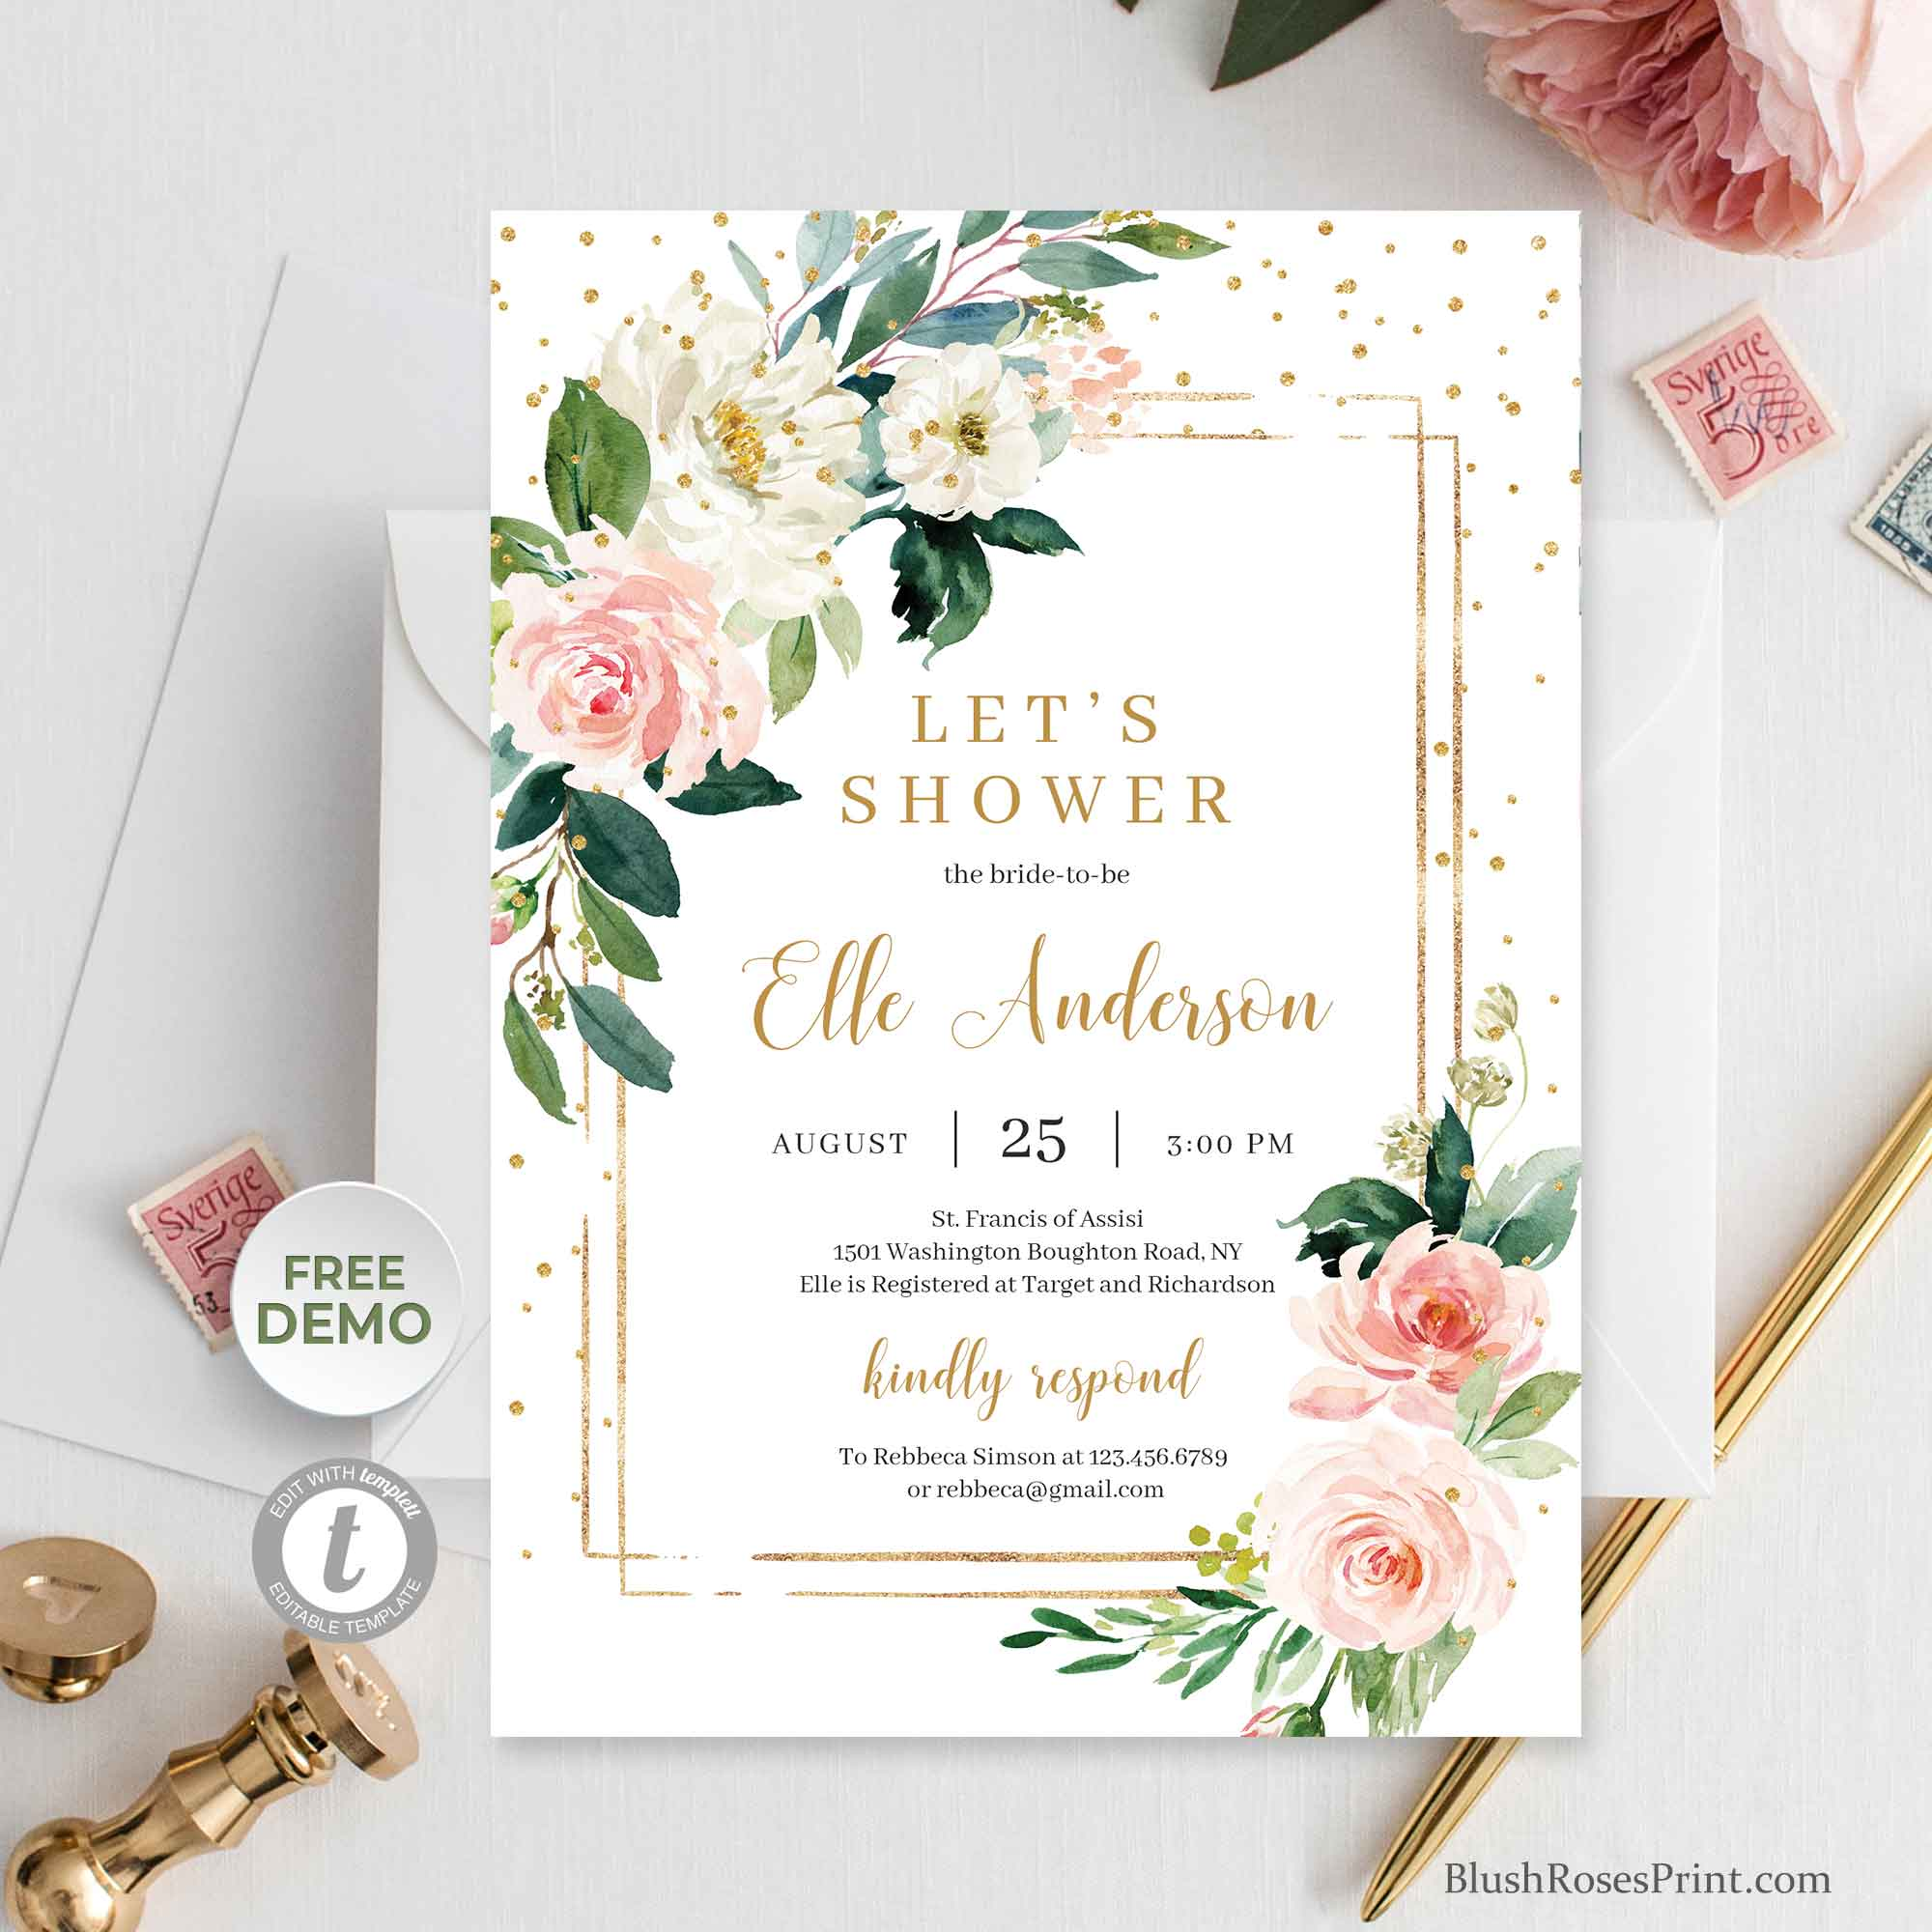 RASSY - Boho Bridal Shower Invitation Printable, Fully Editable with TEMPLETT Invitation, Blush Floral Gold Geometric Frame Invite,